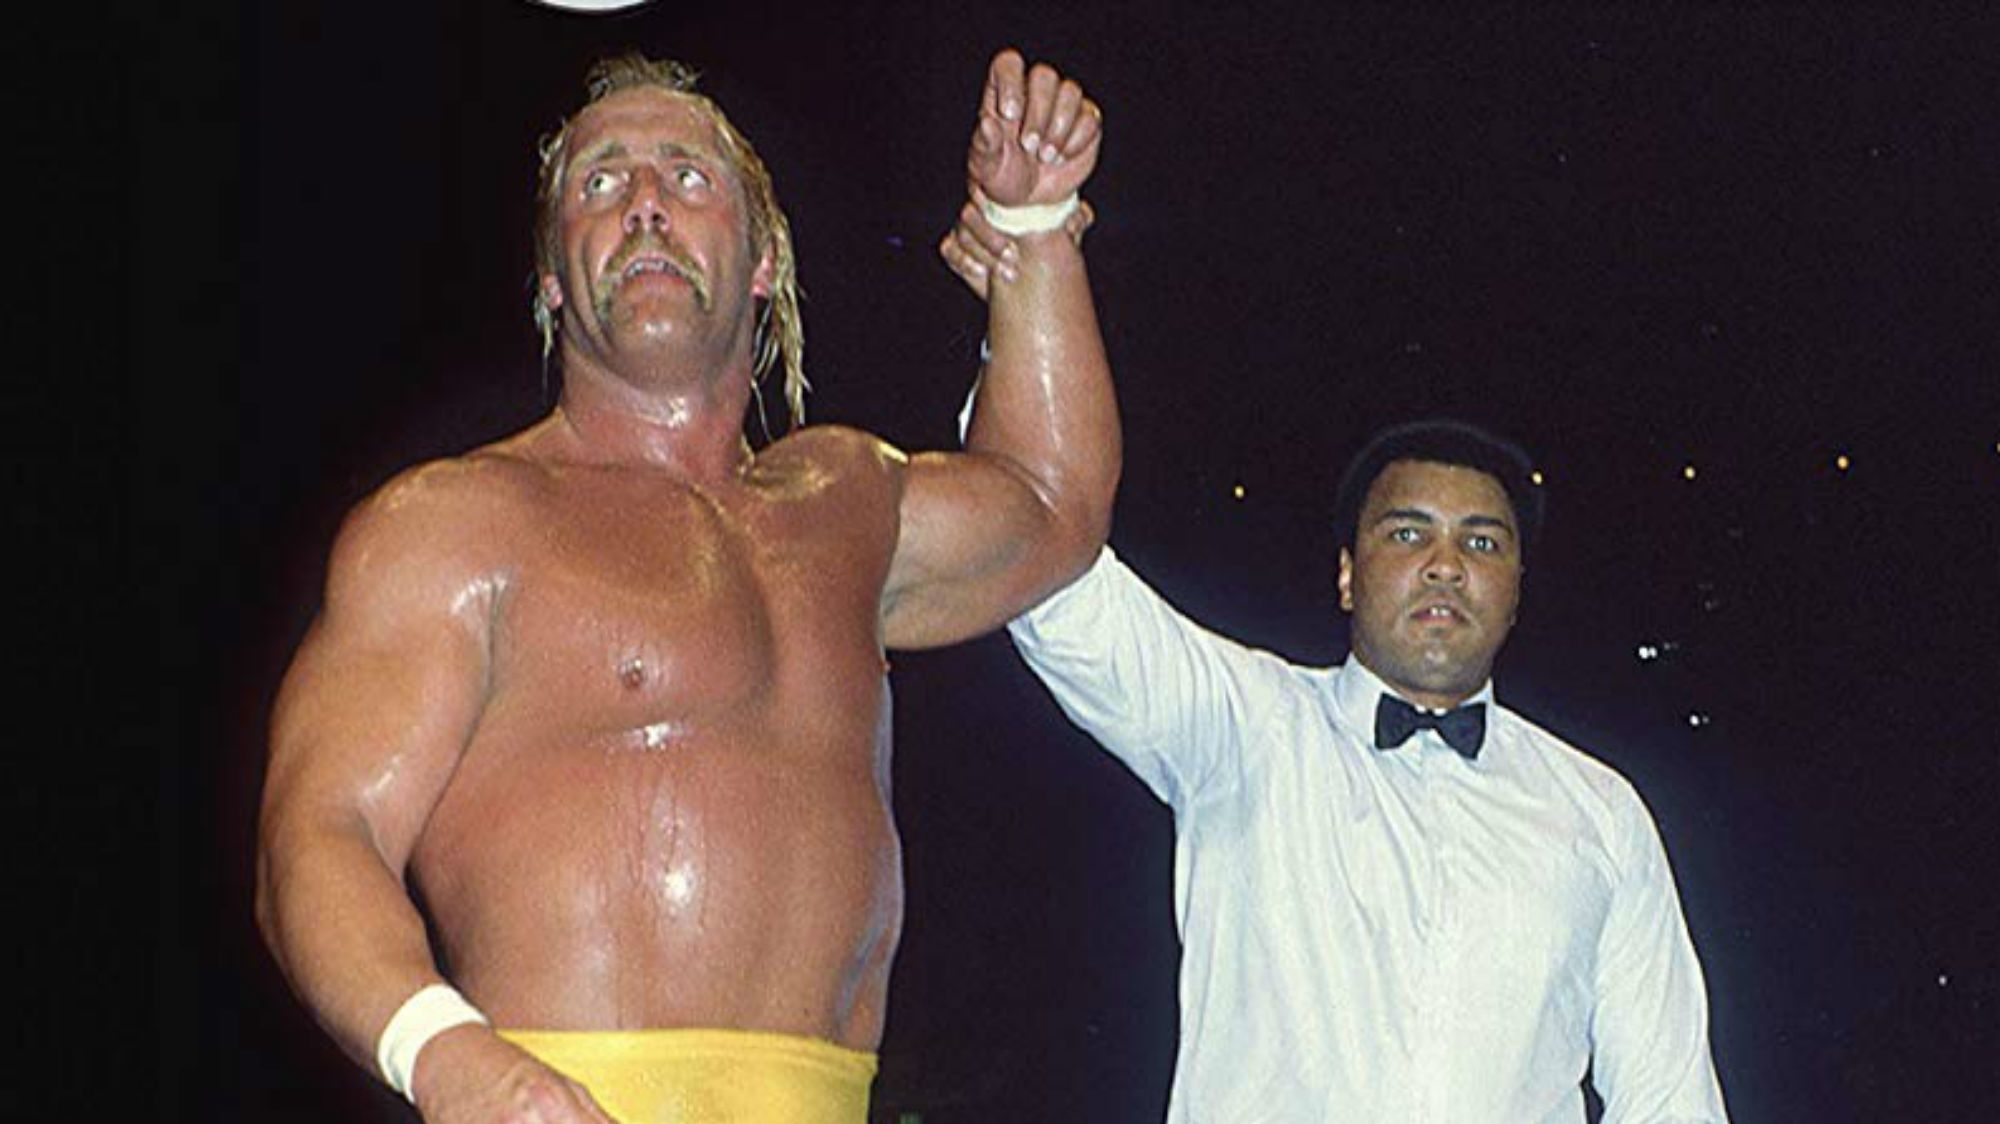 8 Wild Facts About WrestleMania I